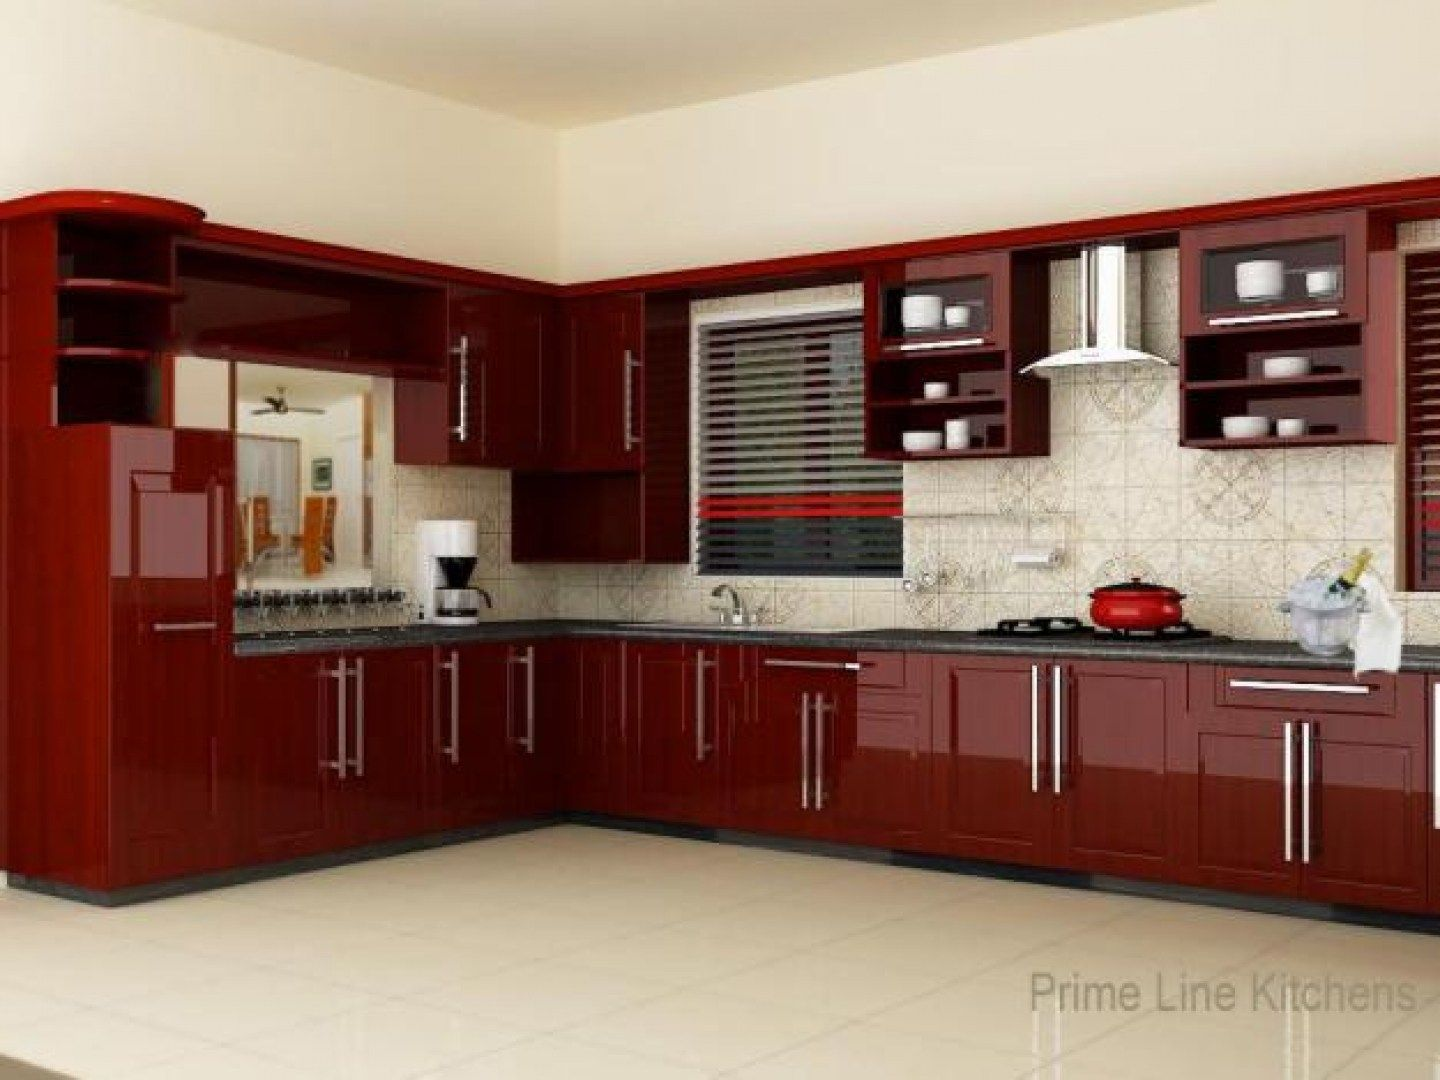 Kitchen design ideas kitchen woodwork designs hyderabad for Kitchen plans and designs